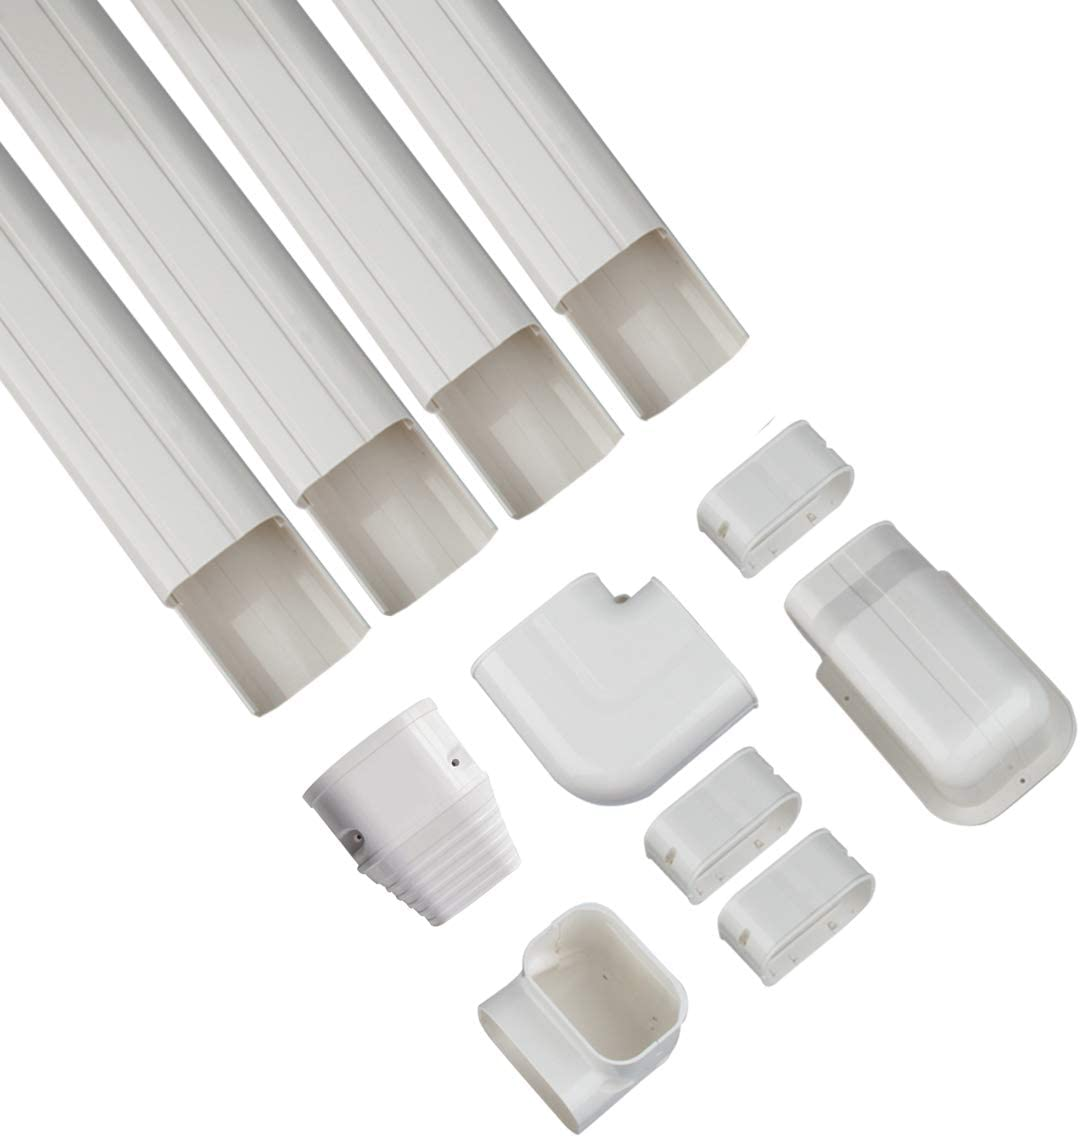 Forestchill 3''w x 14ft Decorative PVC AC Line Set Cover Kit Tubing Slot for Central Air Conditioner, Mini Split A/C Units and Heat Pump System, Condenser Unit